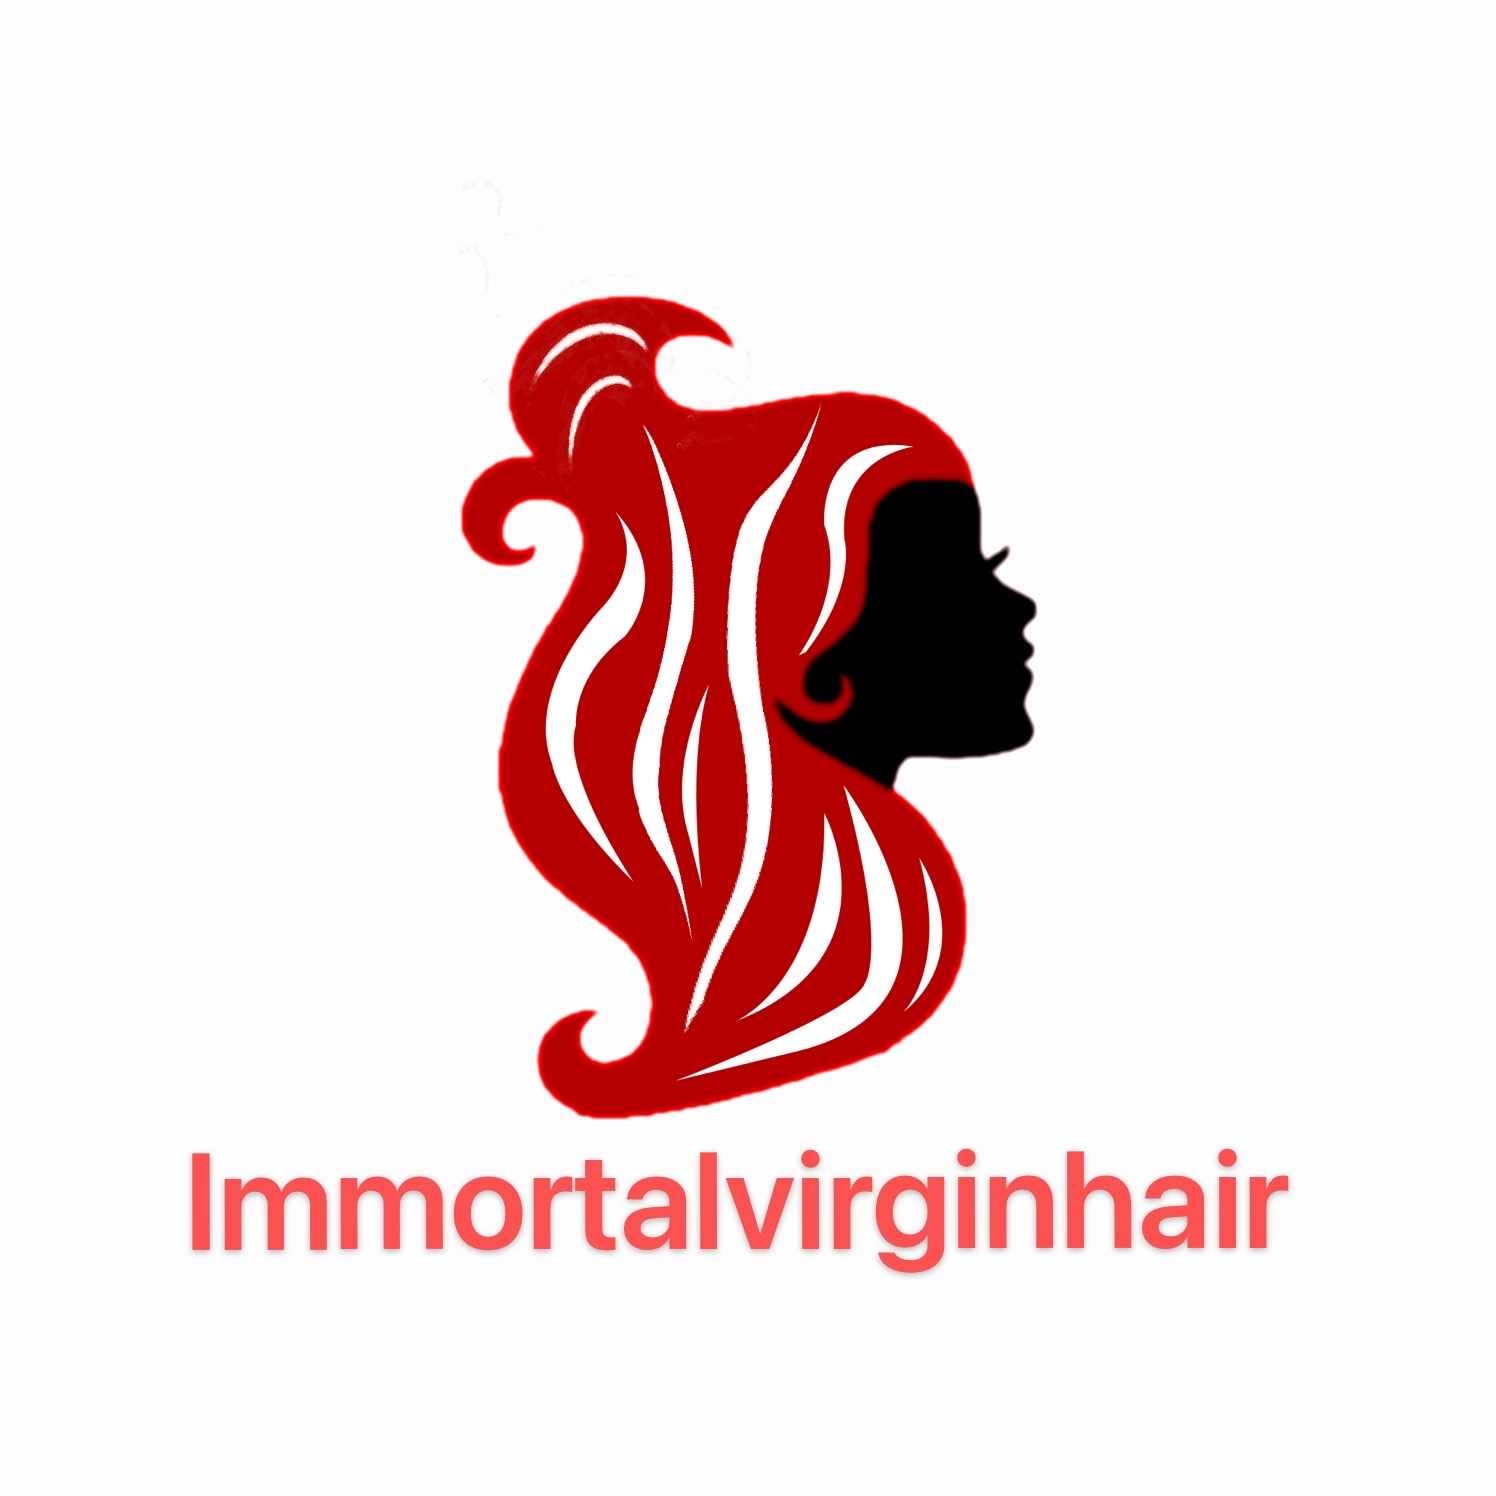 immortalvirginhair factory